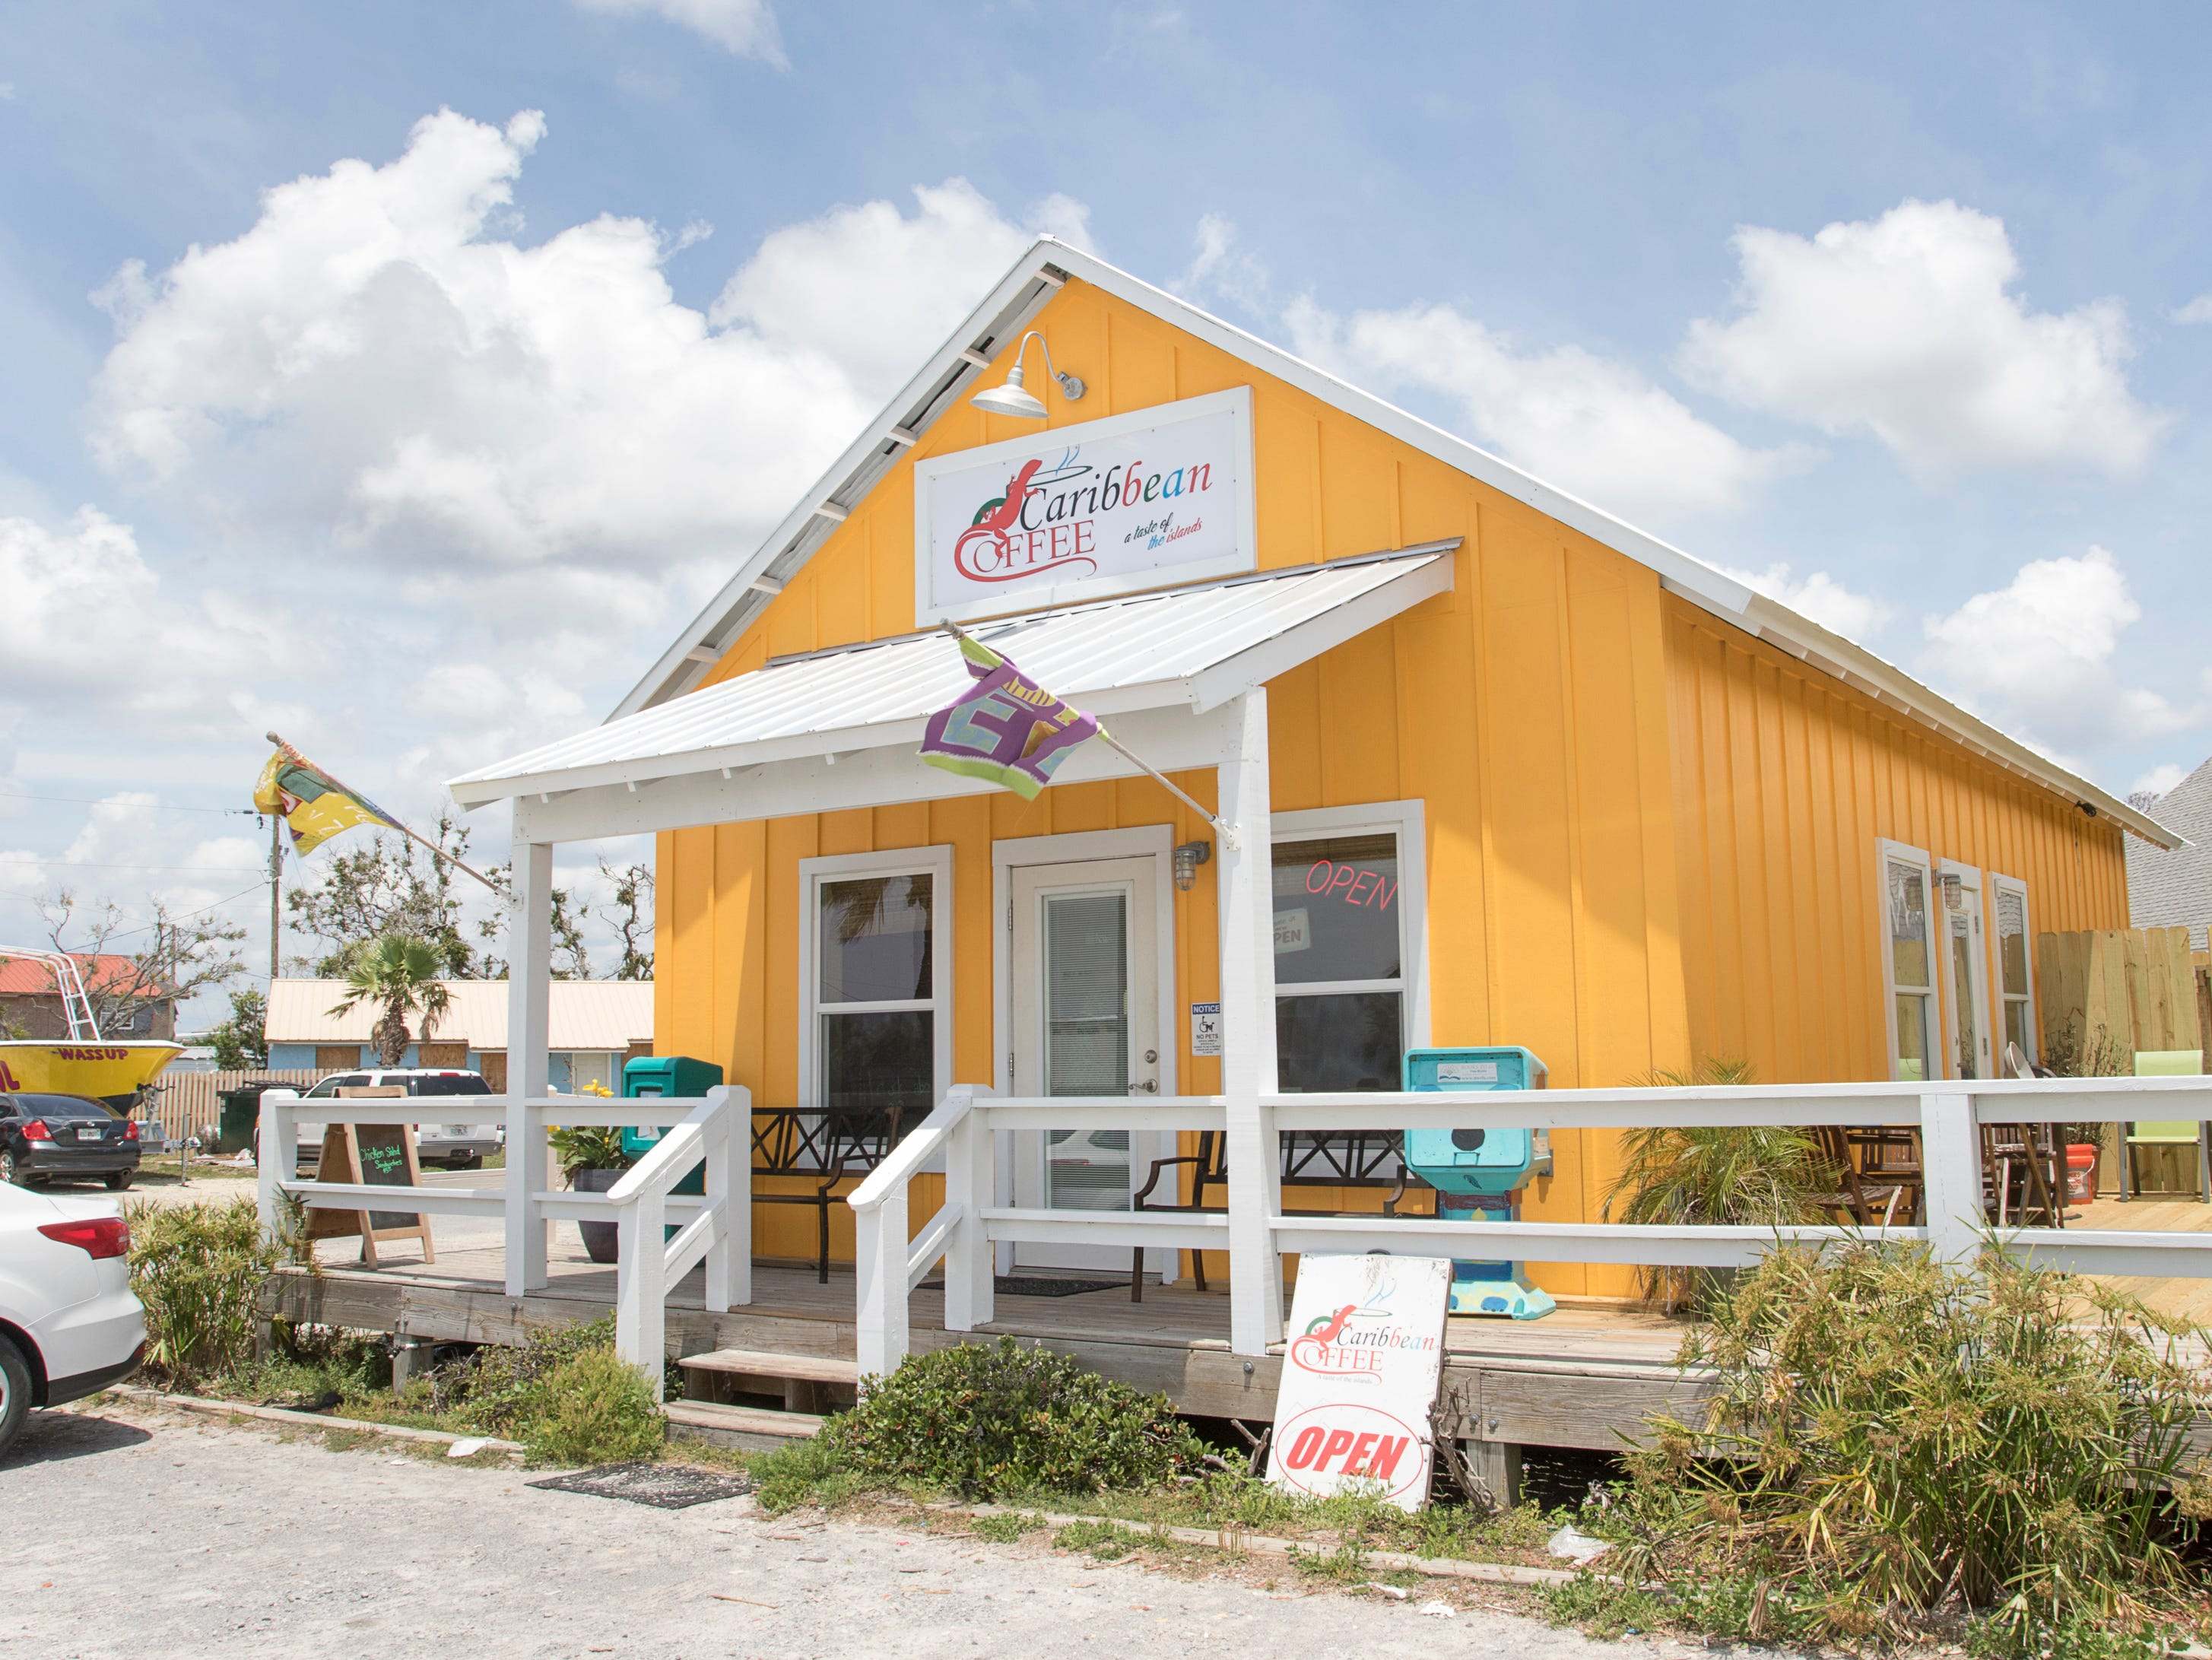 The Caribbean Coffee shop is open for business in Mexico Beach, Florida on Wednesday, May 8, 2019.  Michael made landfall as a Category 5 hurricane between Mexico Beach and Tyndall Air Force Base on October 10, 2018.